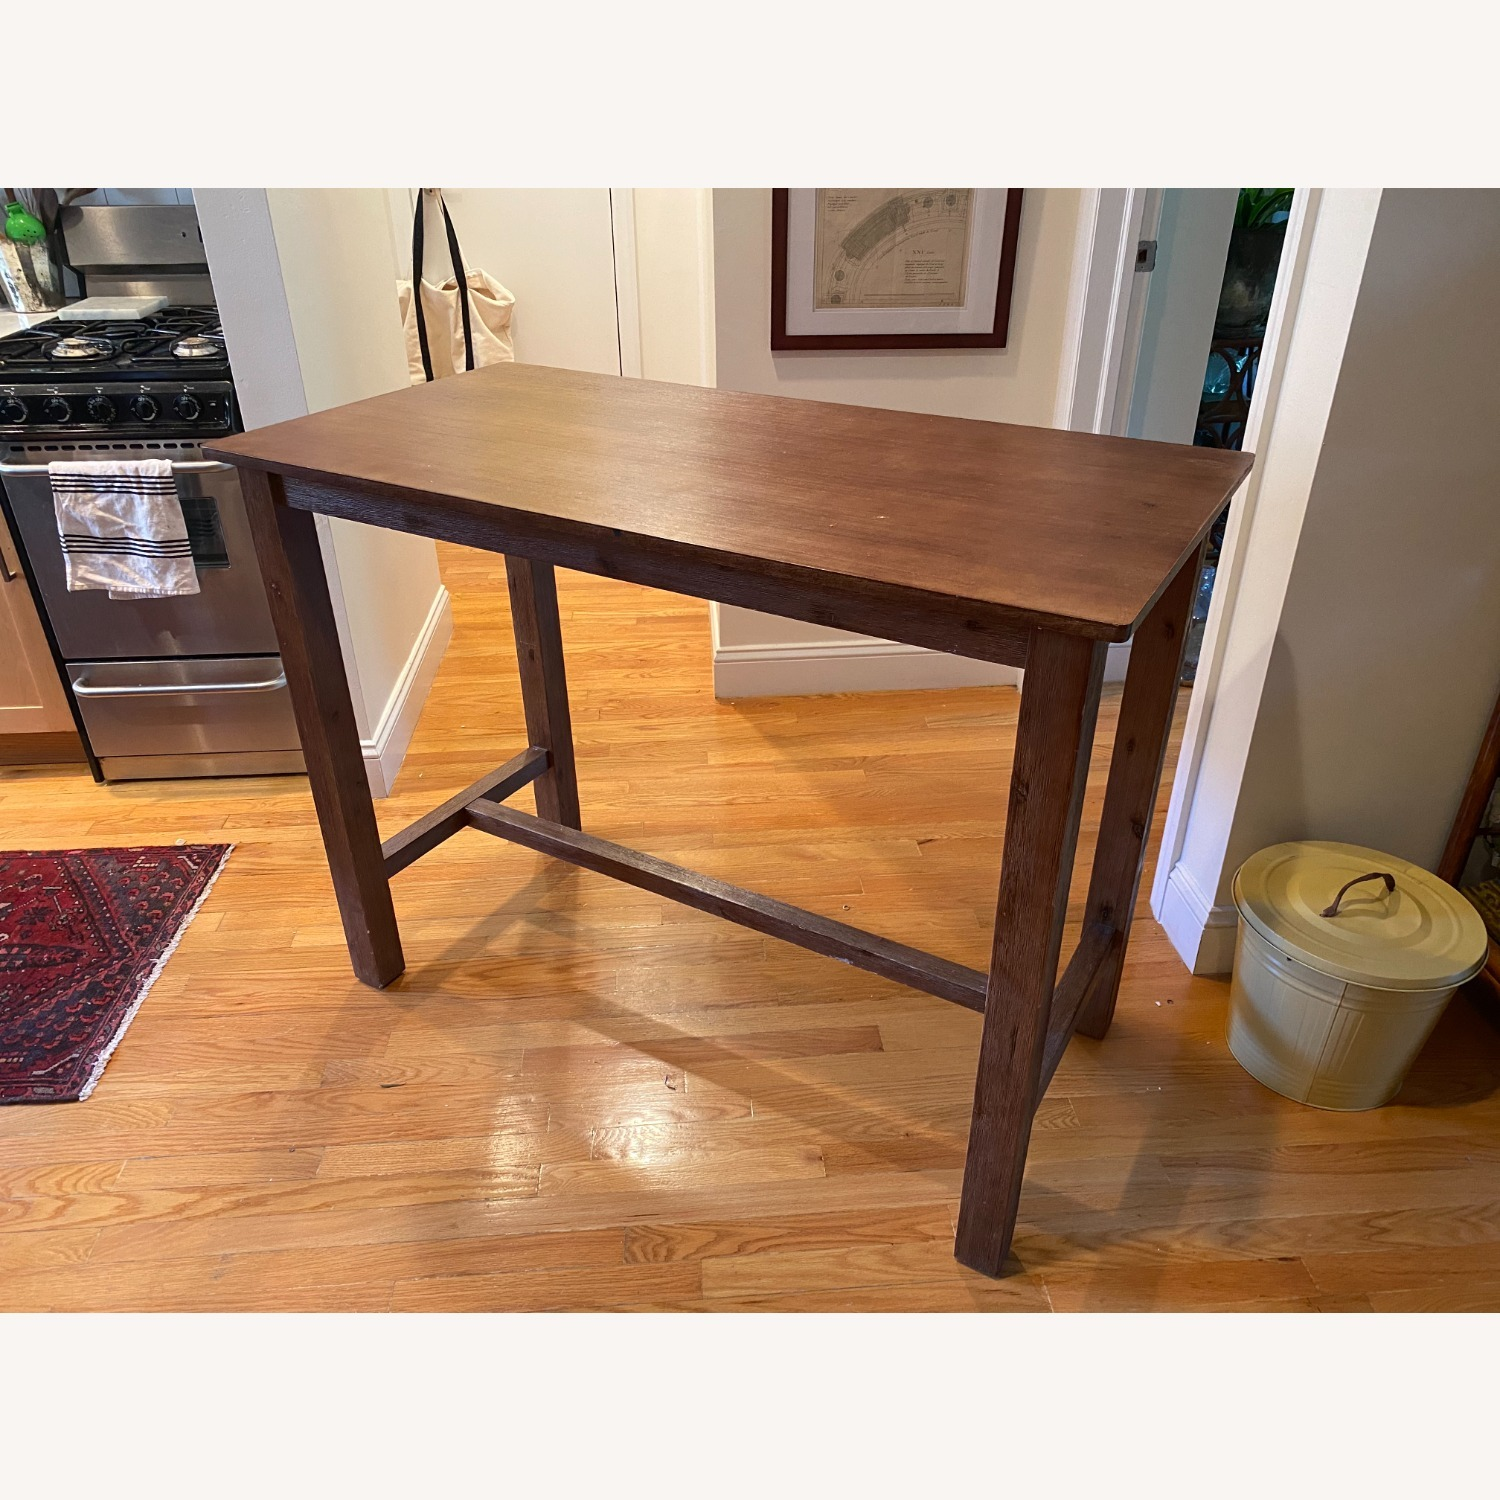 Wayfair Counter Height Rubberwood Solid Wood Dining Table - image-1